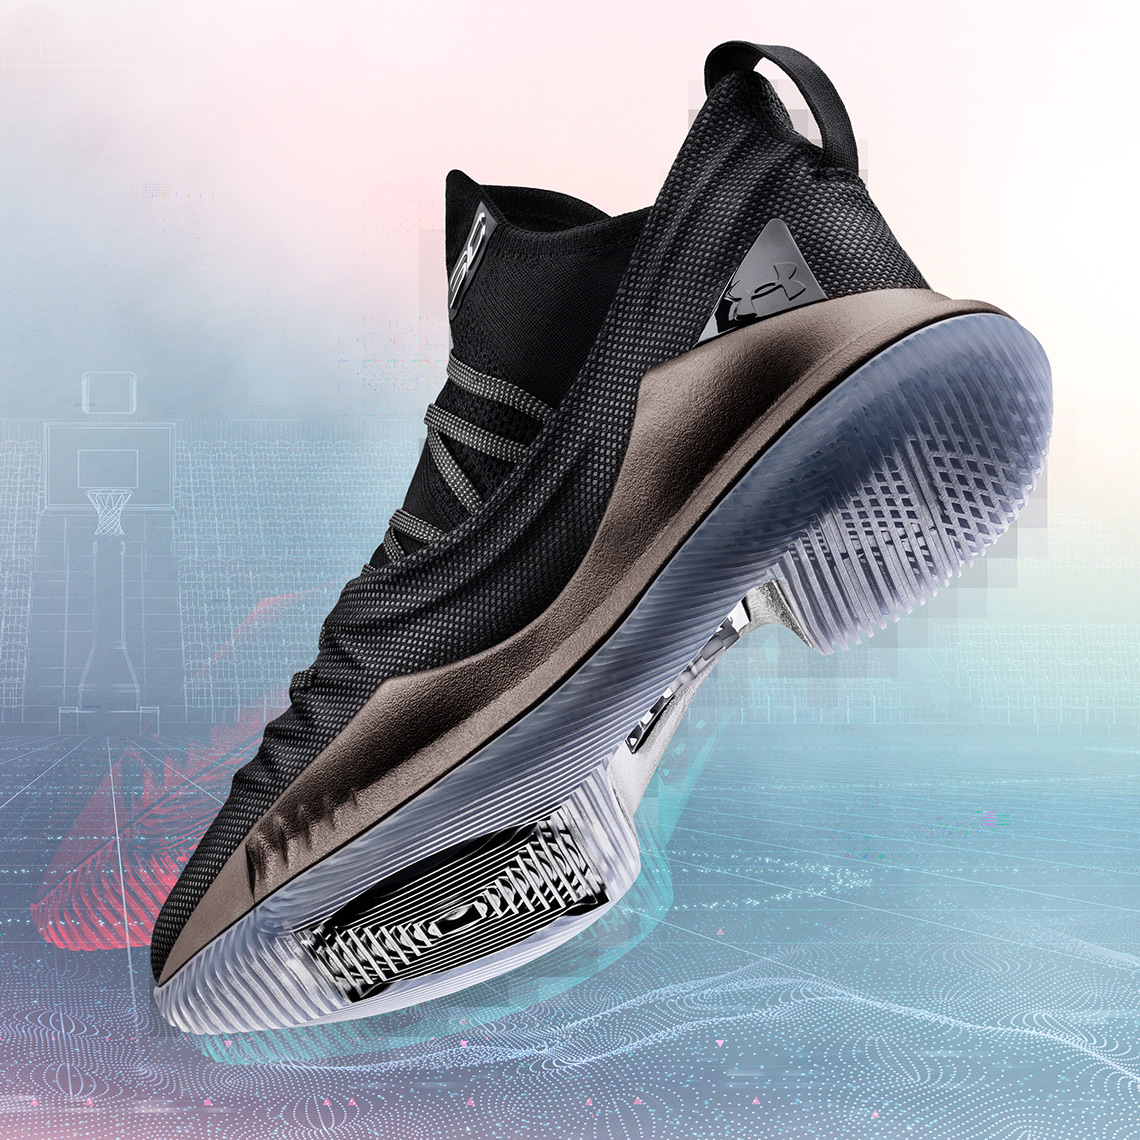 f7b0b393b222 UA Curry 5 (V) Pi Day Steph Curry First Look + Release Info ...